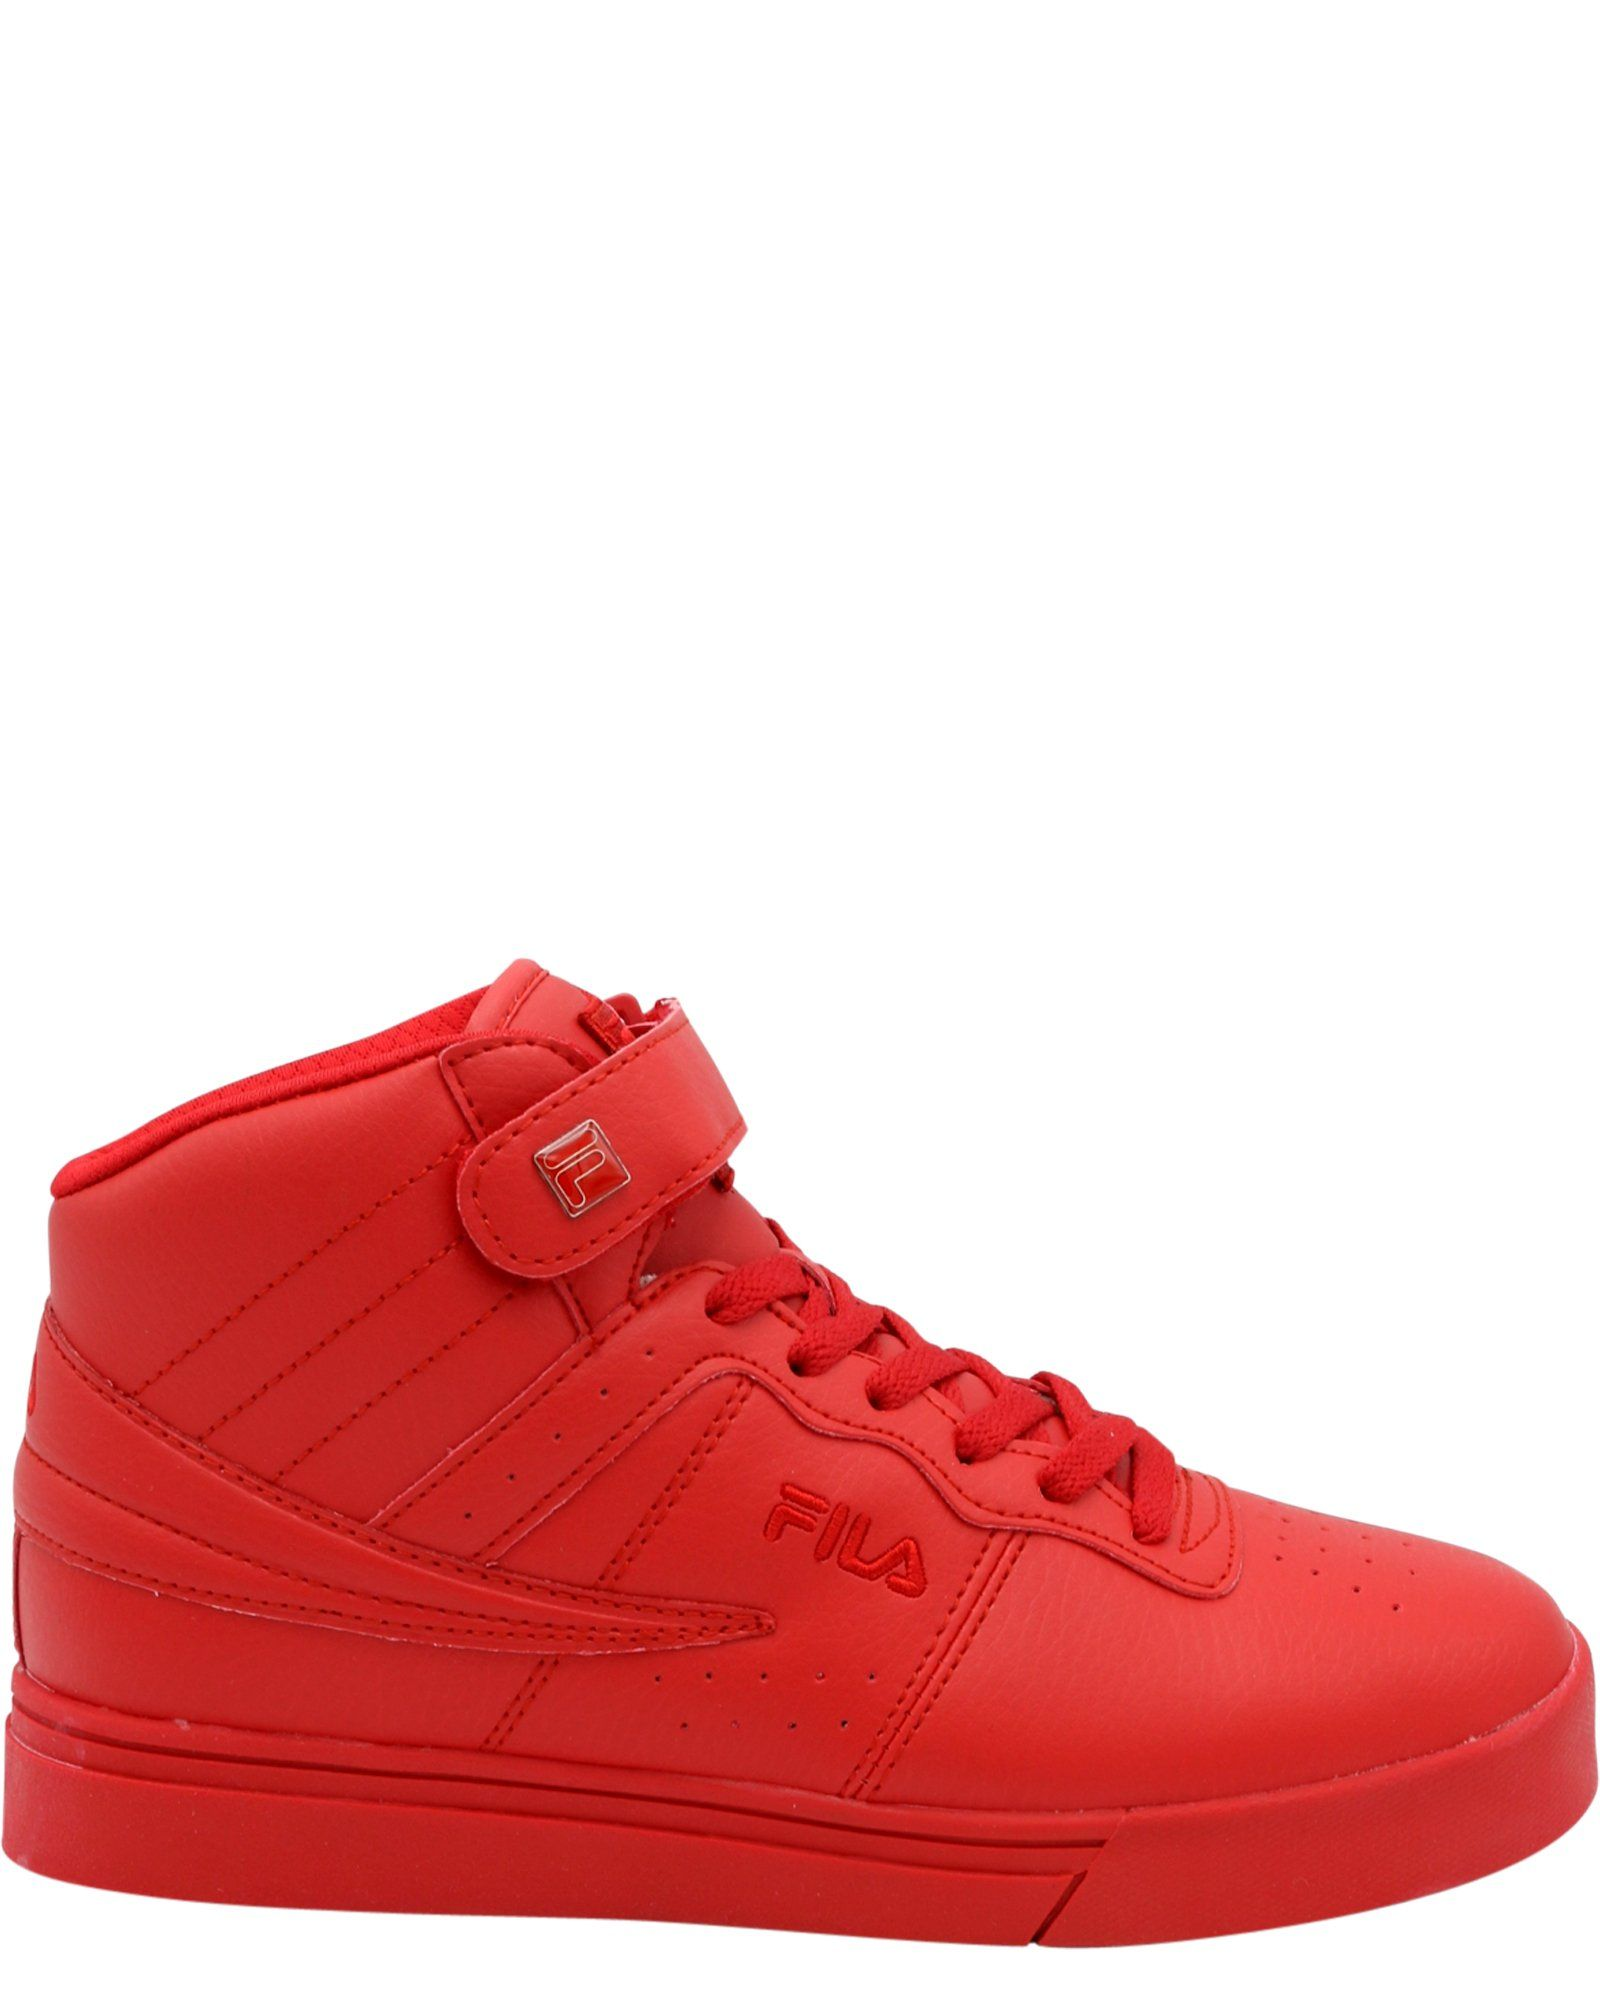 686ff82c69f82 Vulc 13 Mp Tonal Sneaker | Products | Sneakers, Basketball shoes on ...